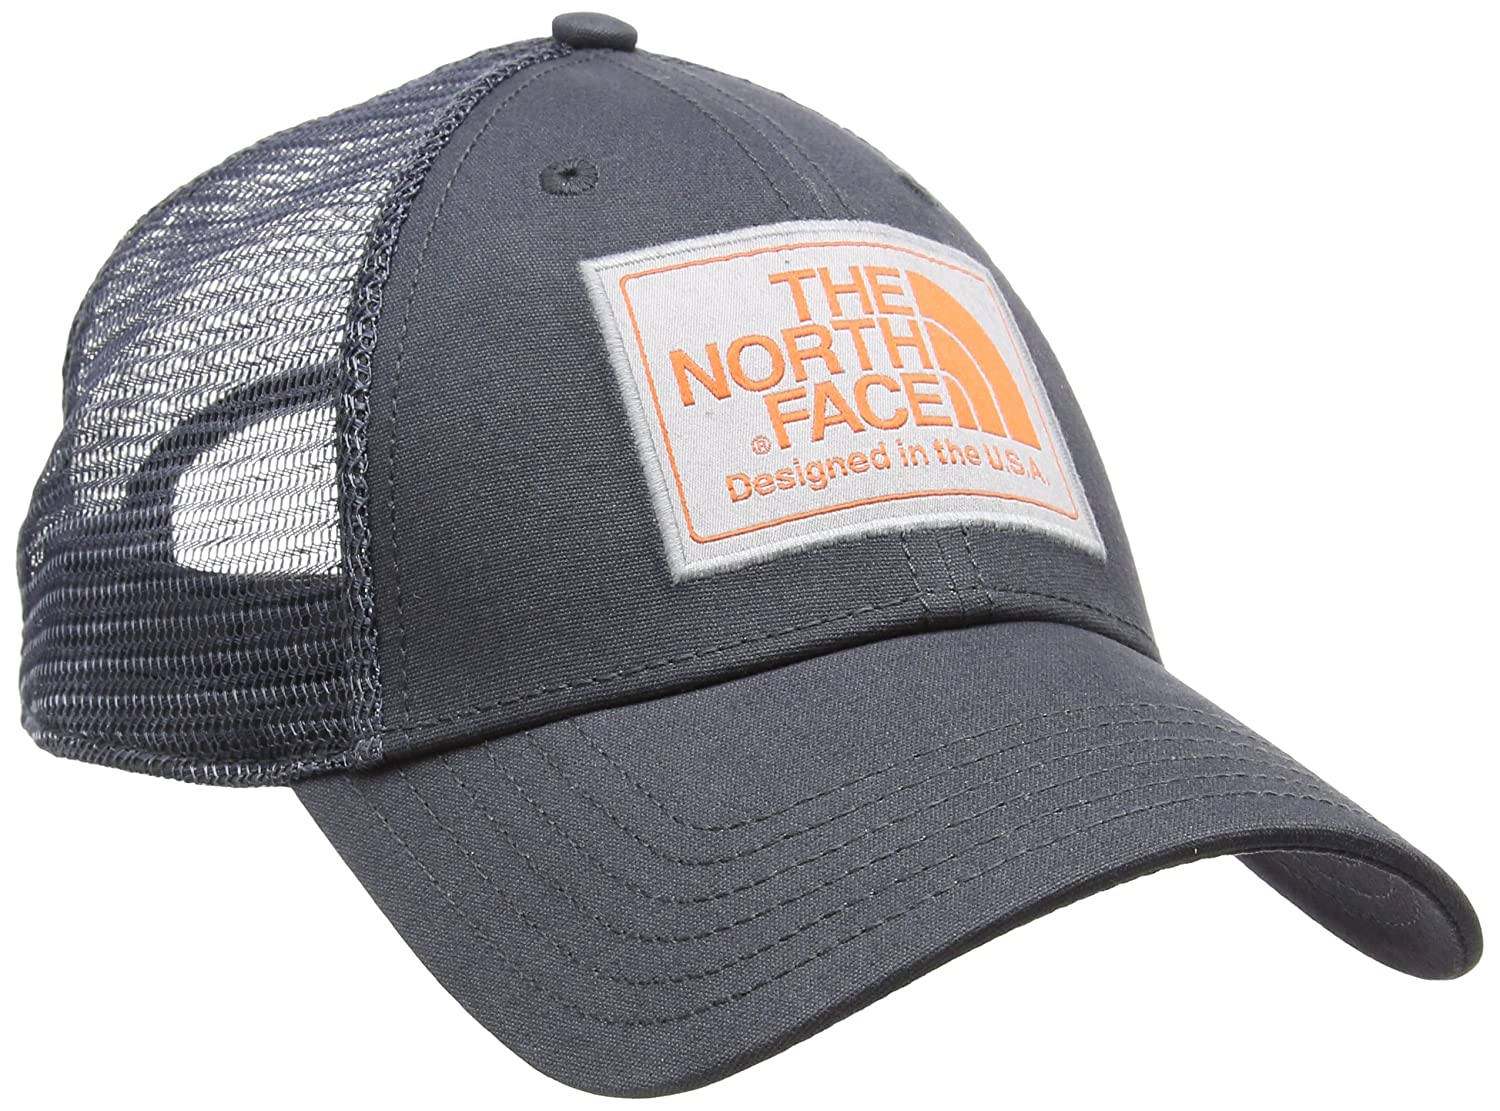 The North Face Kappe Mudder Trucker Hat Gorra, Unisex, Marrón (Weimaraner Brown), OS: Amazon.es: Deportes y aire libre